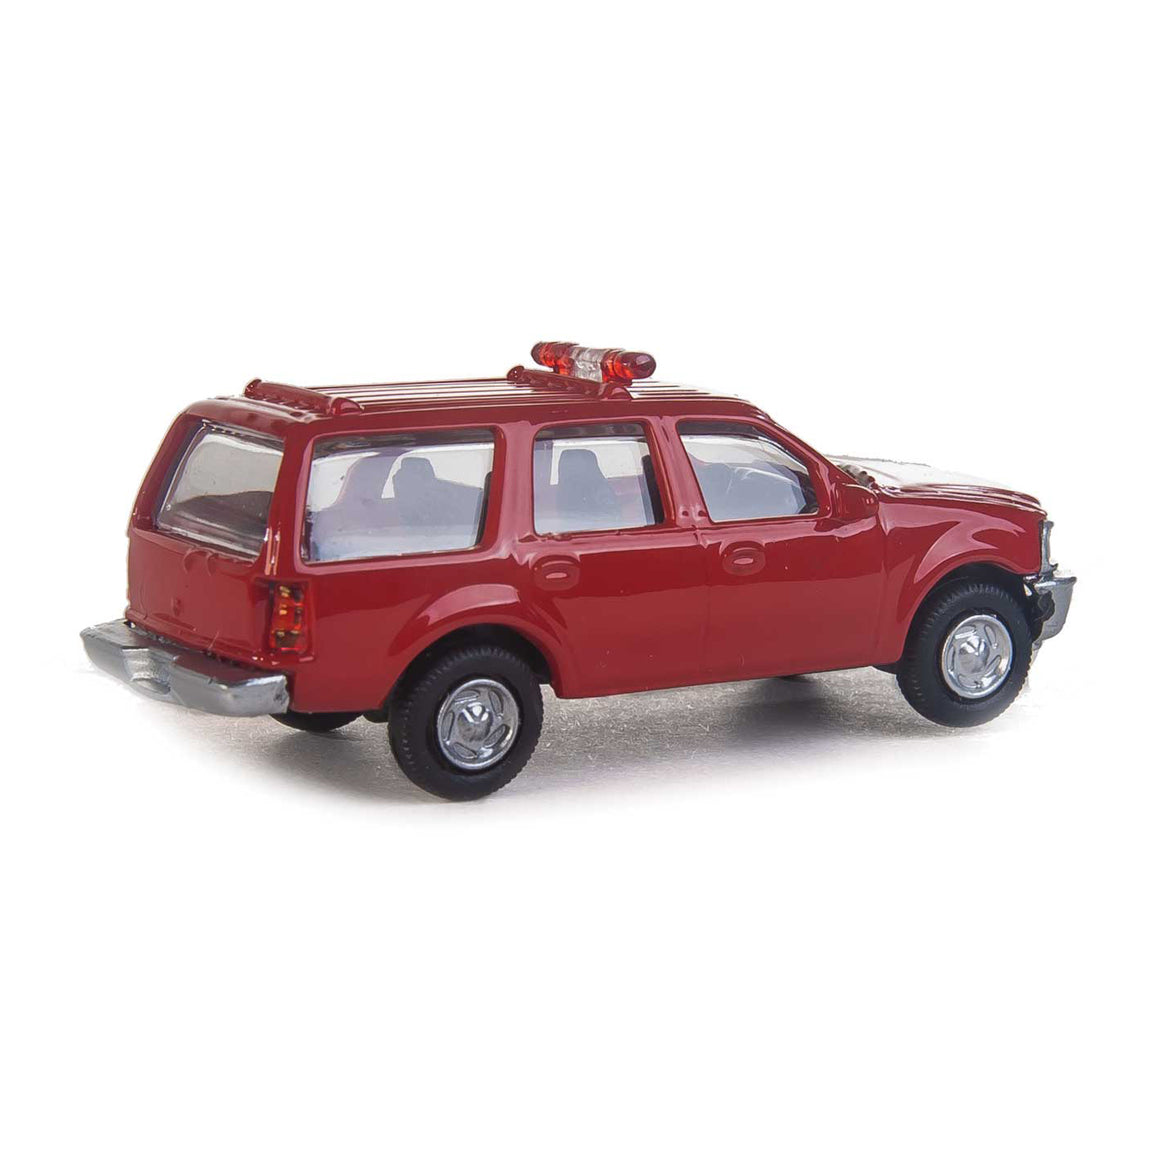 HO Scale: Ford Expedition Service Vehicle - Fire Command